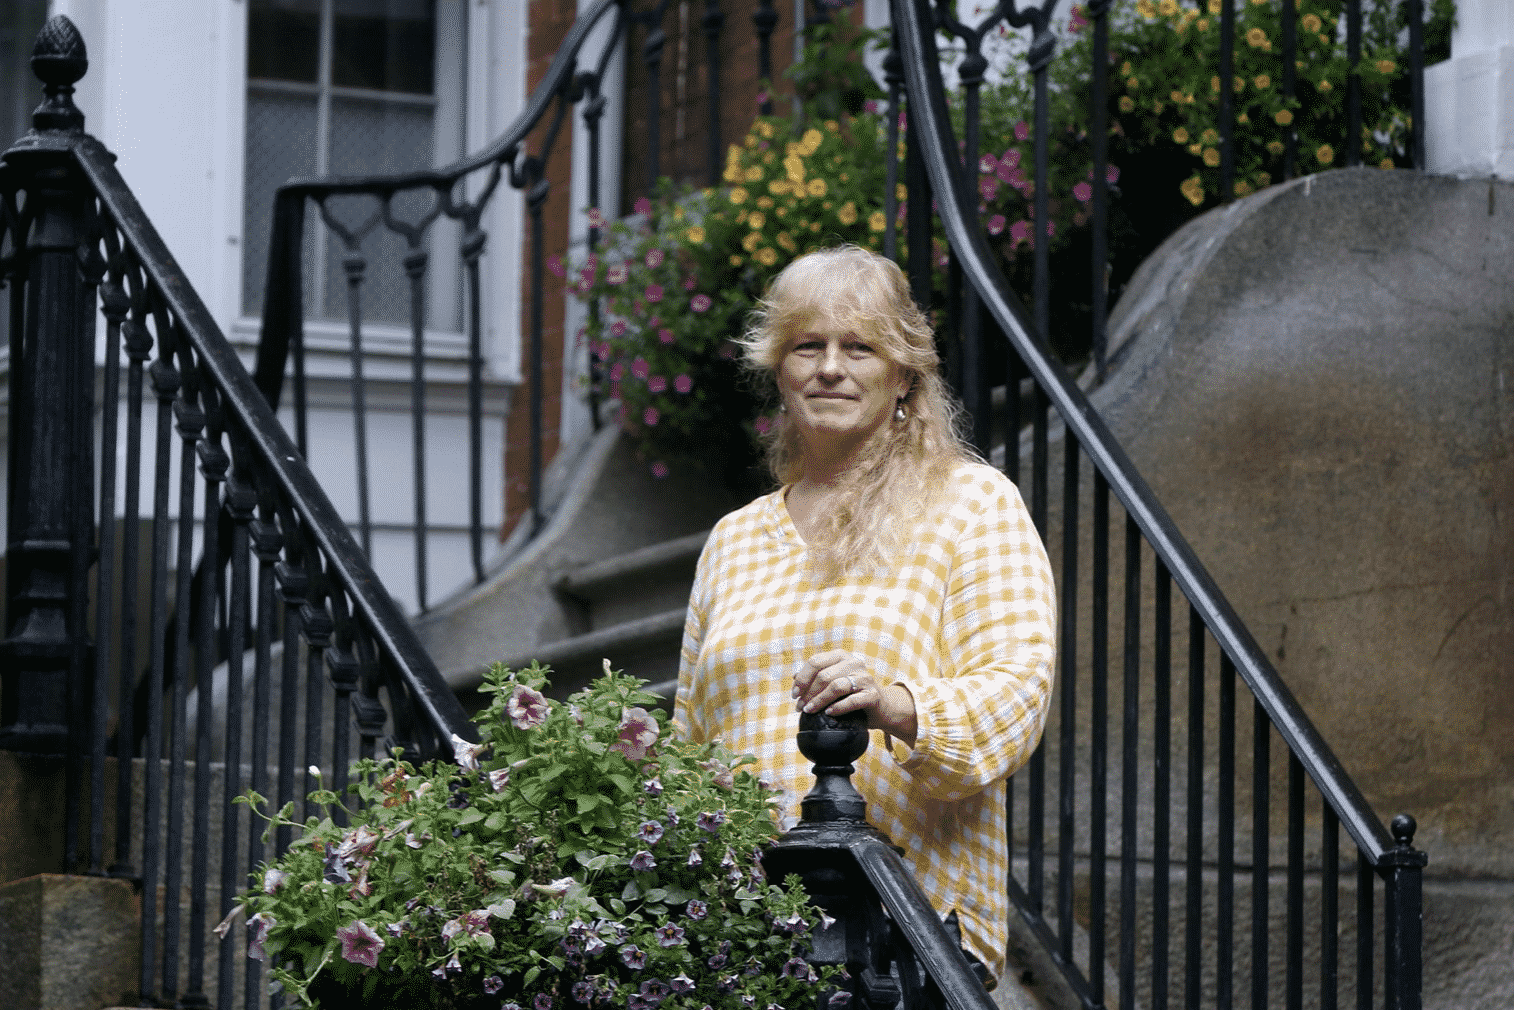 A woman wearing a yellow plaid top standing next to a beautiful flower box attached to a black iron railing.